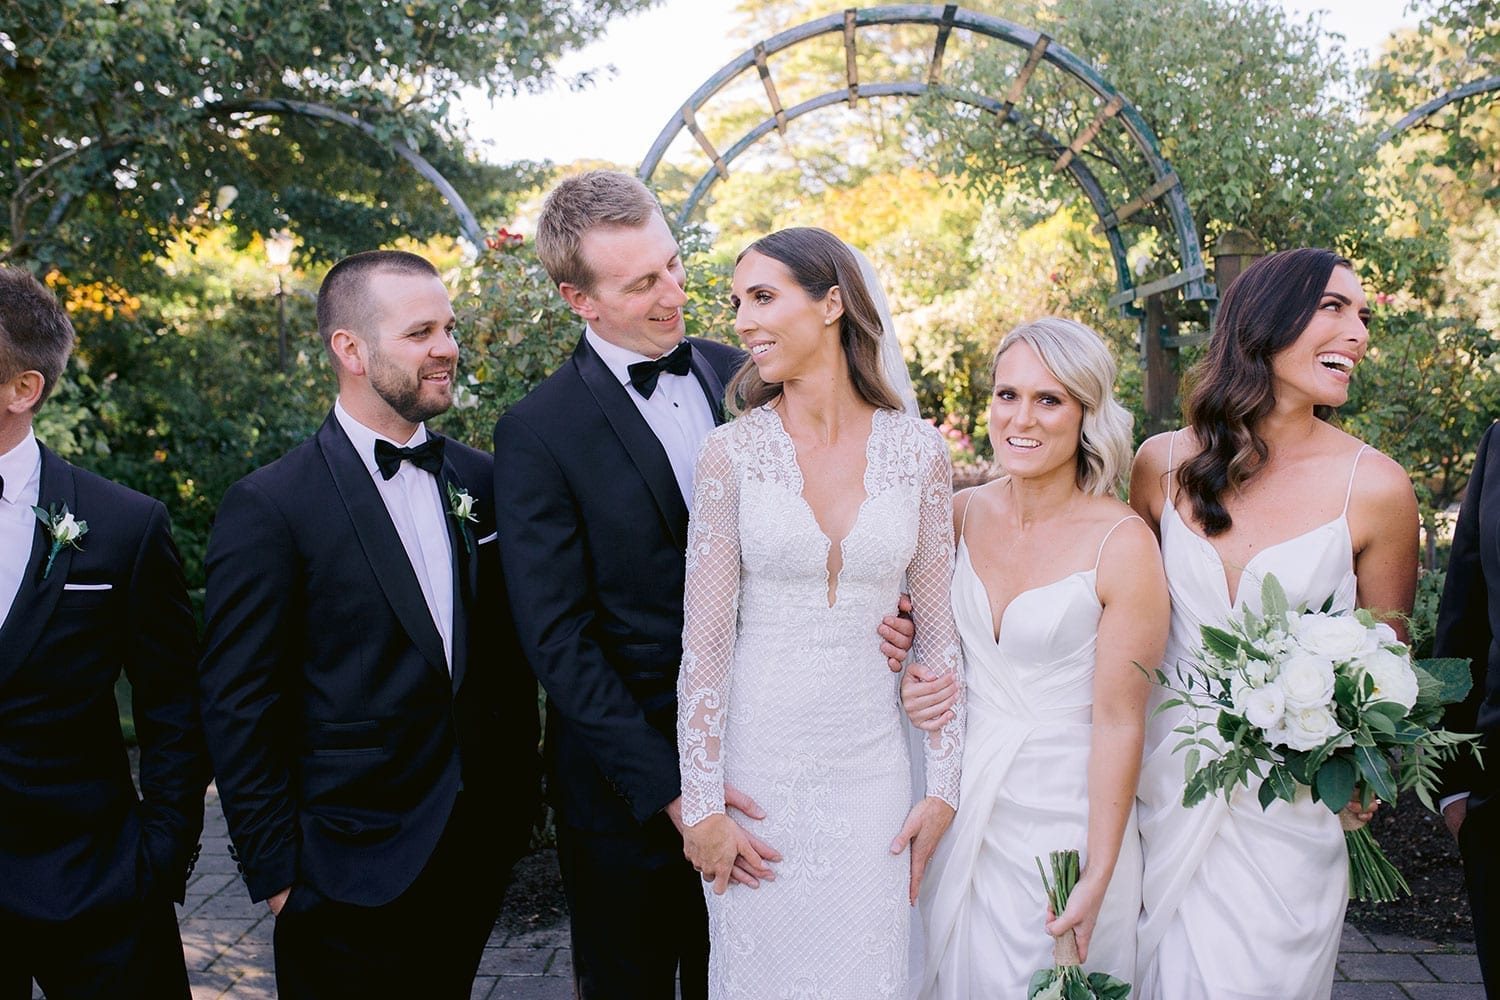 Vinka Design Features Real Weddings - Bride in bespoke fitted lace gown with deep v neck. Laughing with bridal party in garden